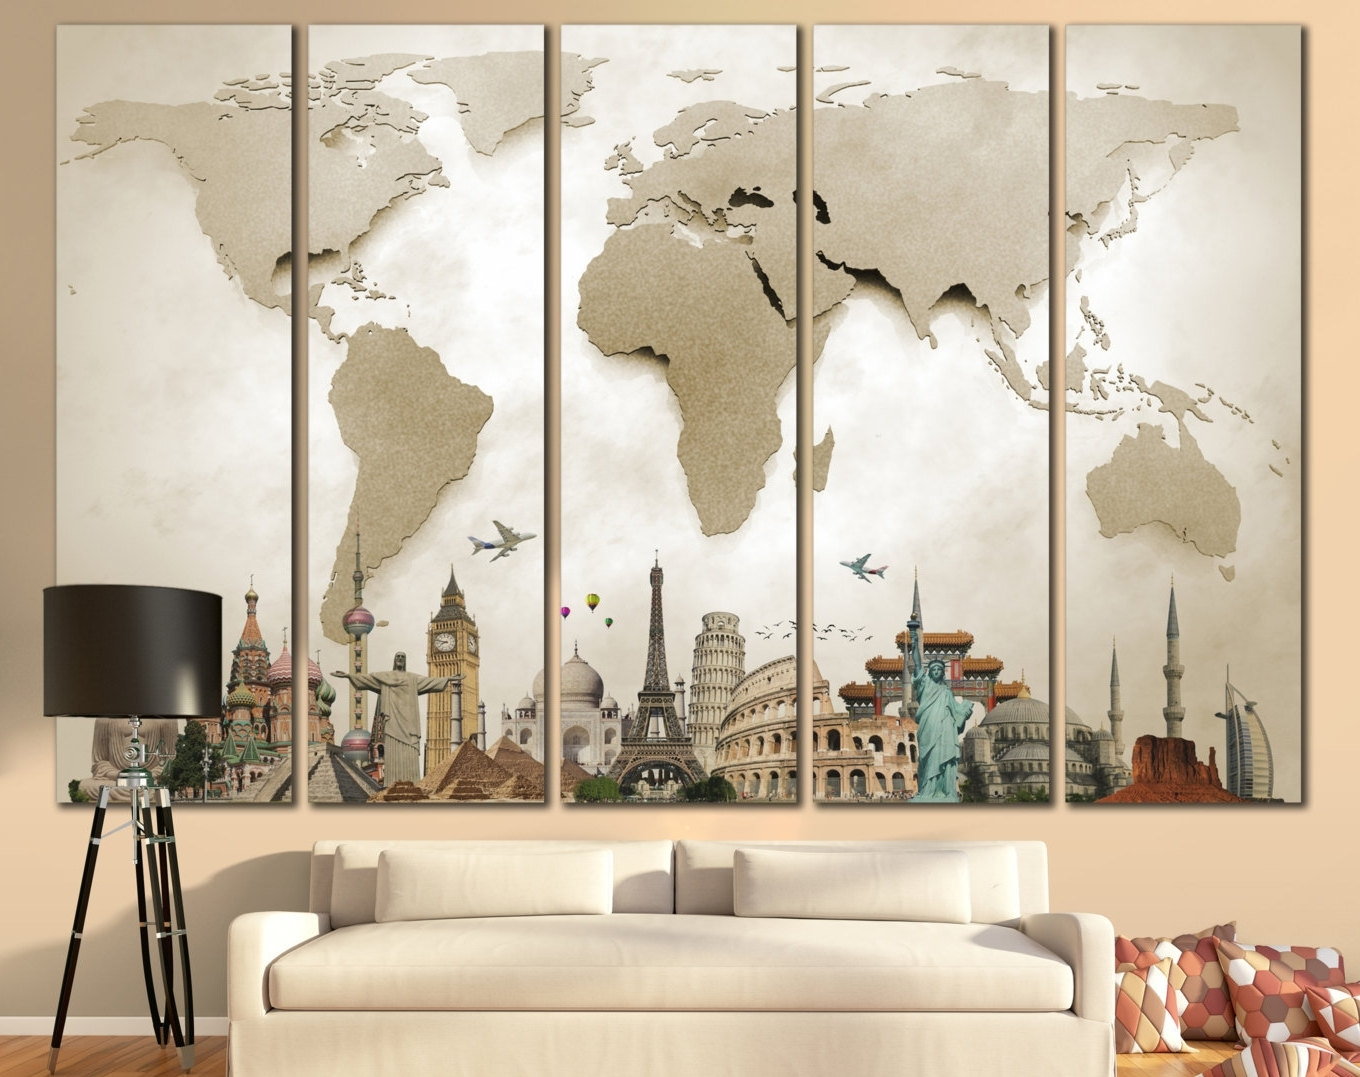 Large Wall Decor Ideas Maps : Amazing Large Wall Decor Ideas Options With Regard To 2018 Maps Wall Art (View 9 of 20)